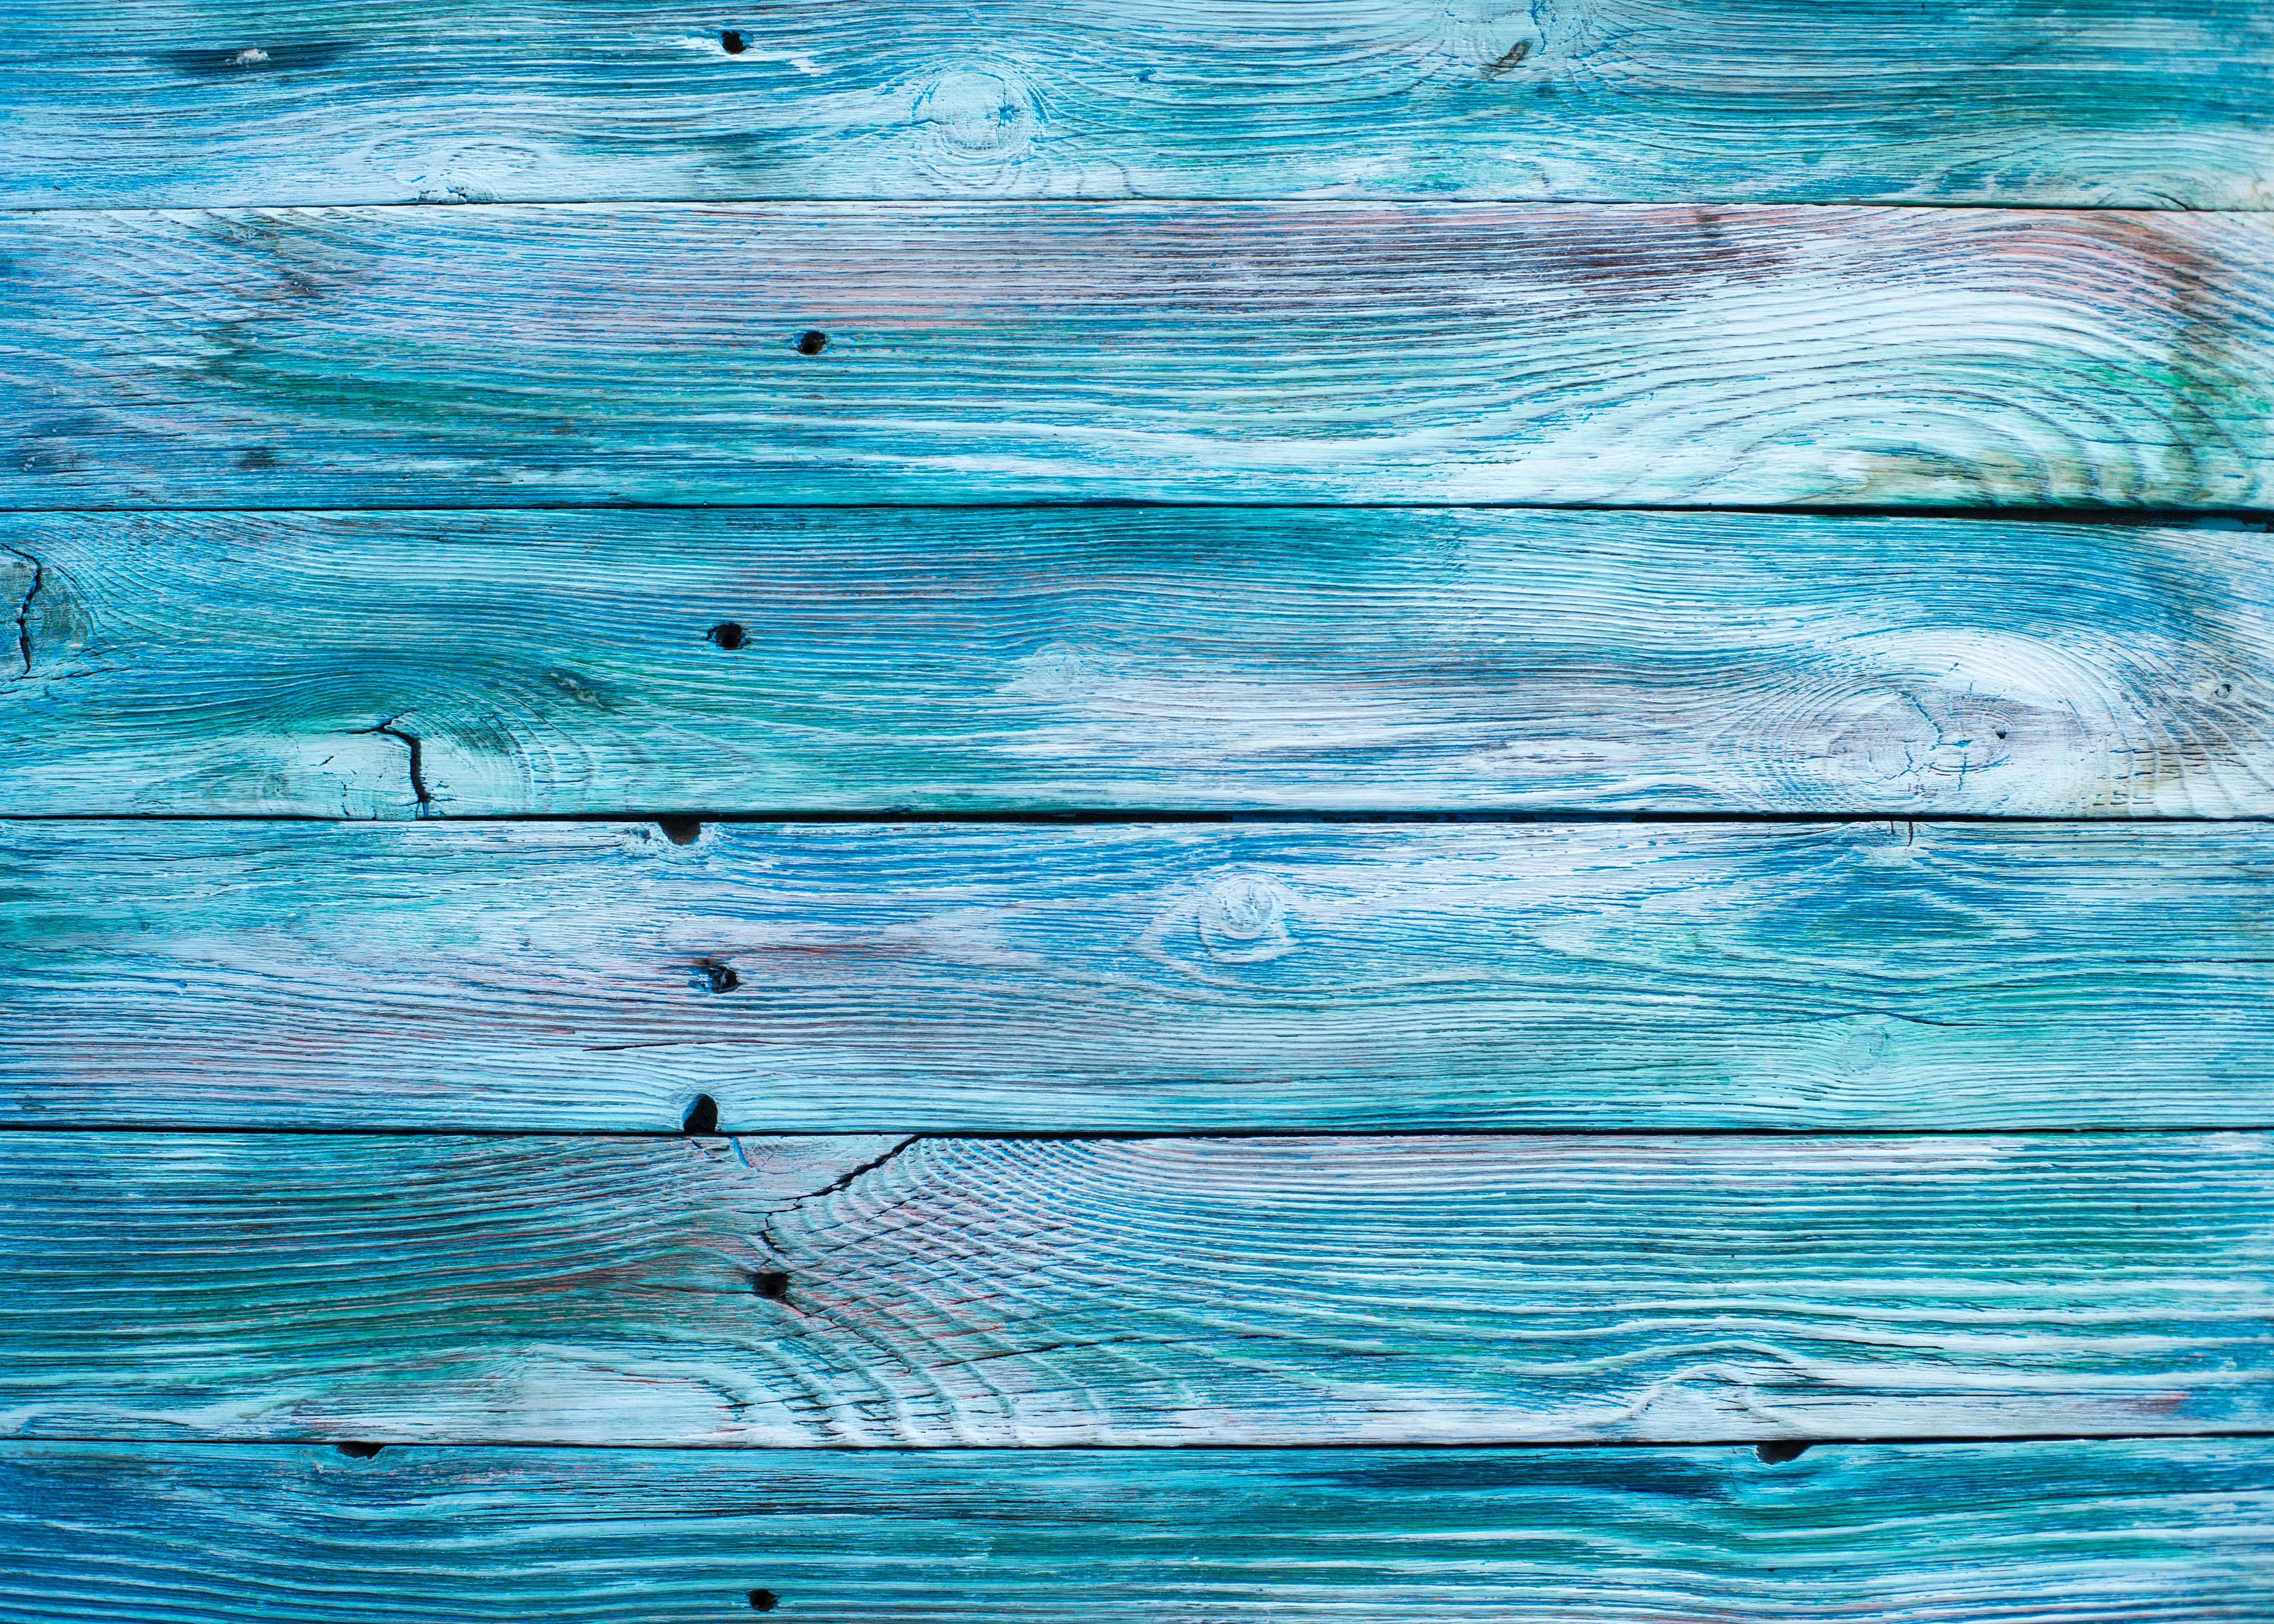 144890 download wallpaper Textures, Texture, Planks, Board, Wood, Wooden, Surface screensavers and pictures for free